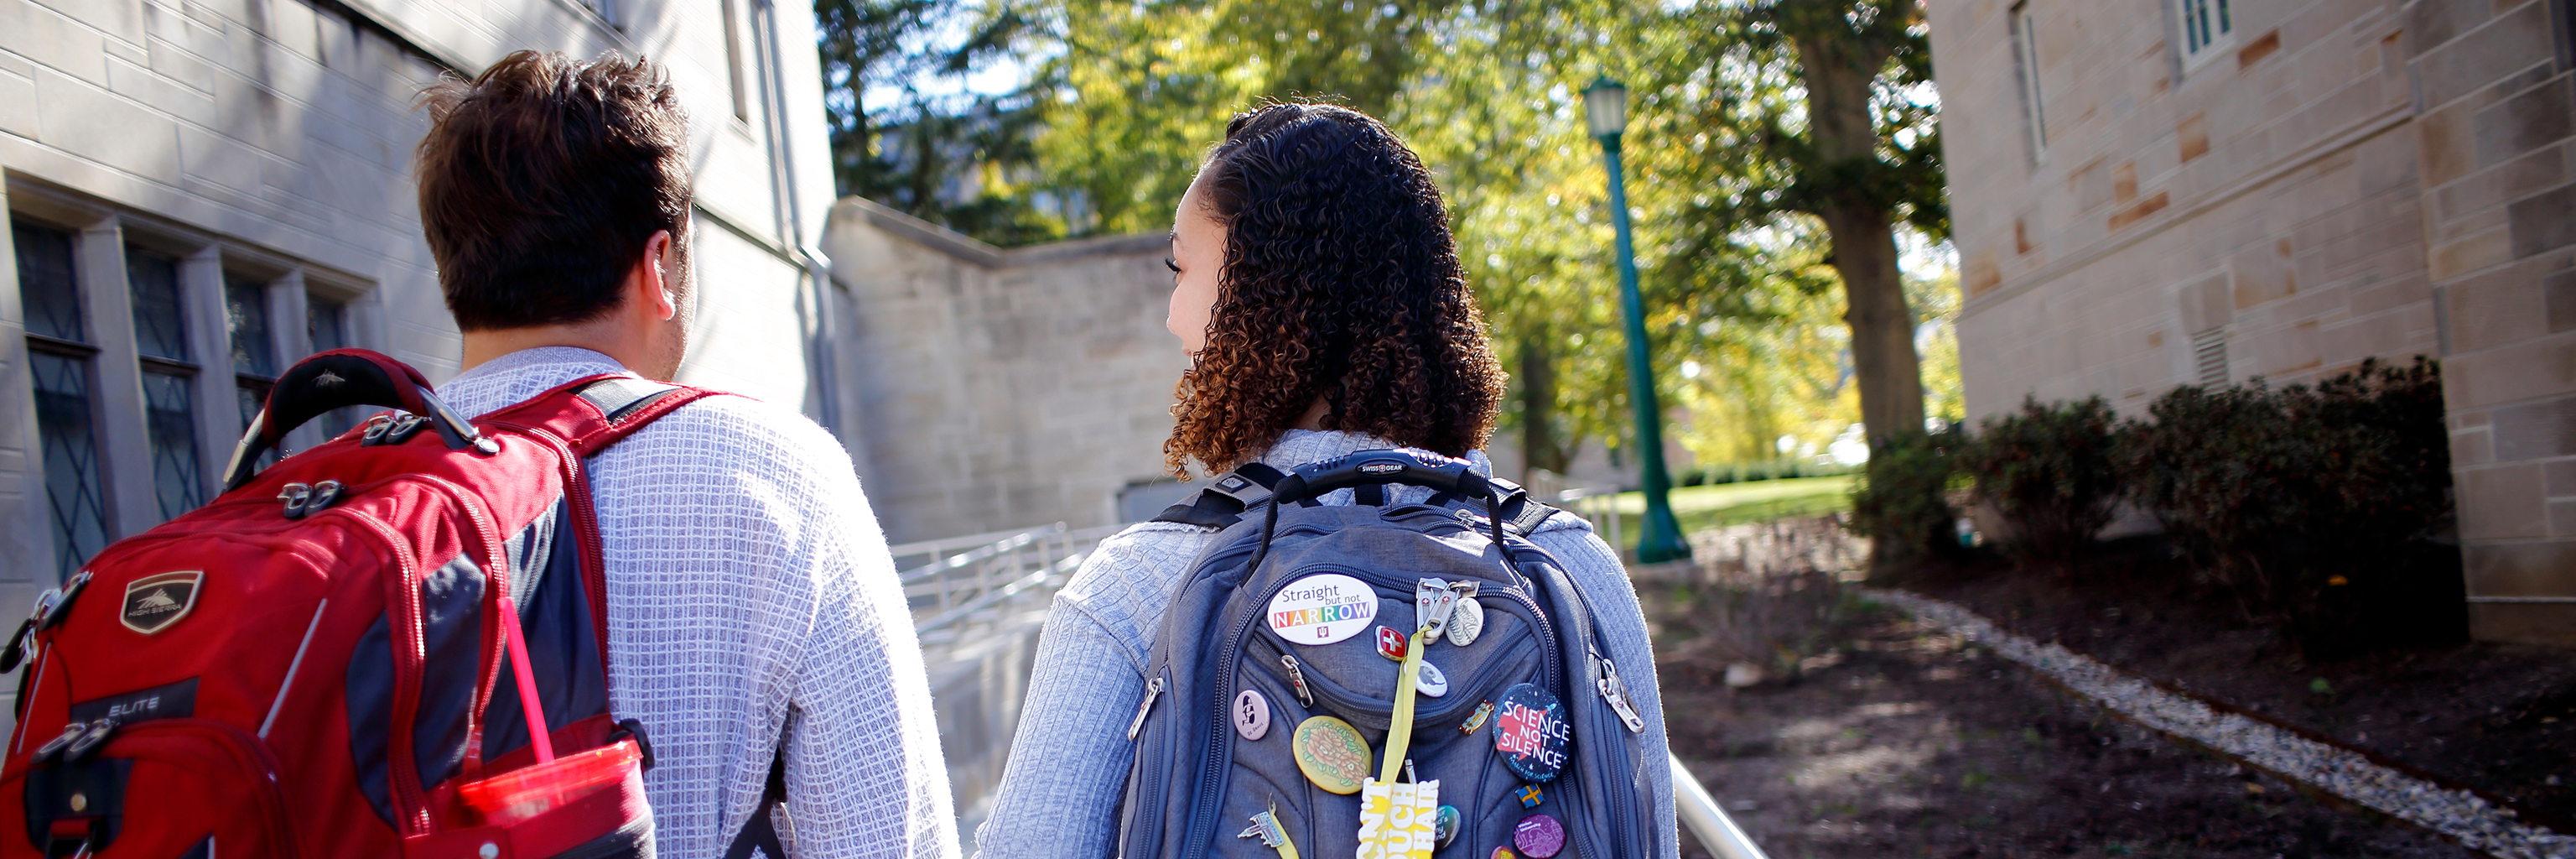 Two students walk through the Indiana University Bloomington campus.